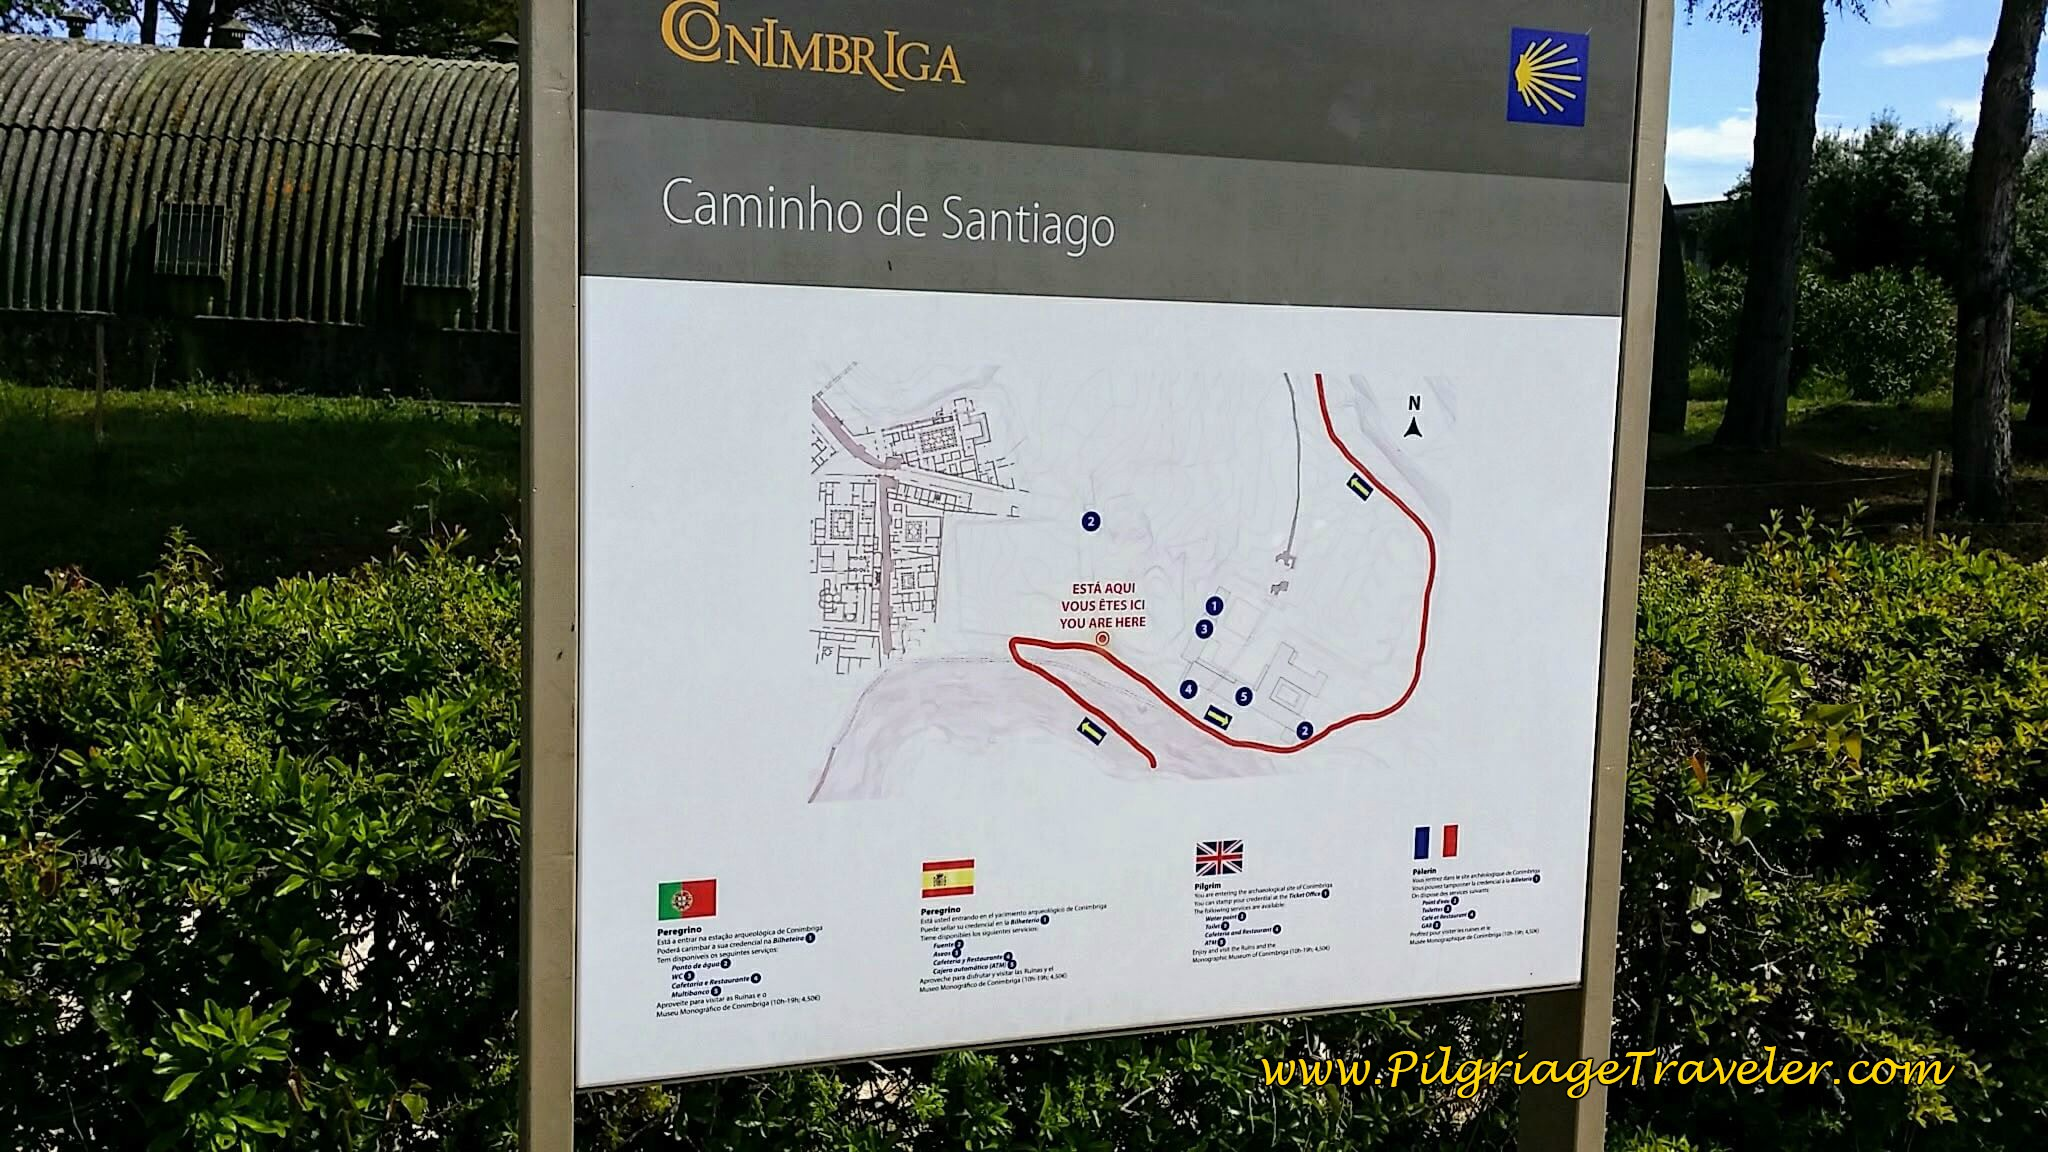 Entering Roman Ruins of Conimbriga